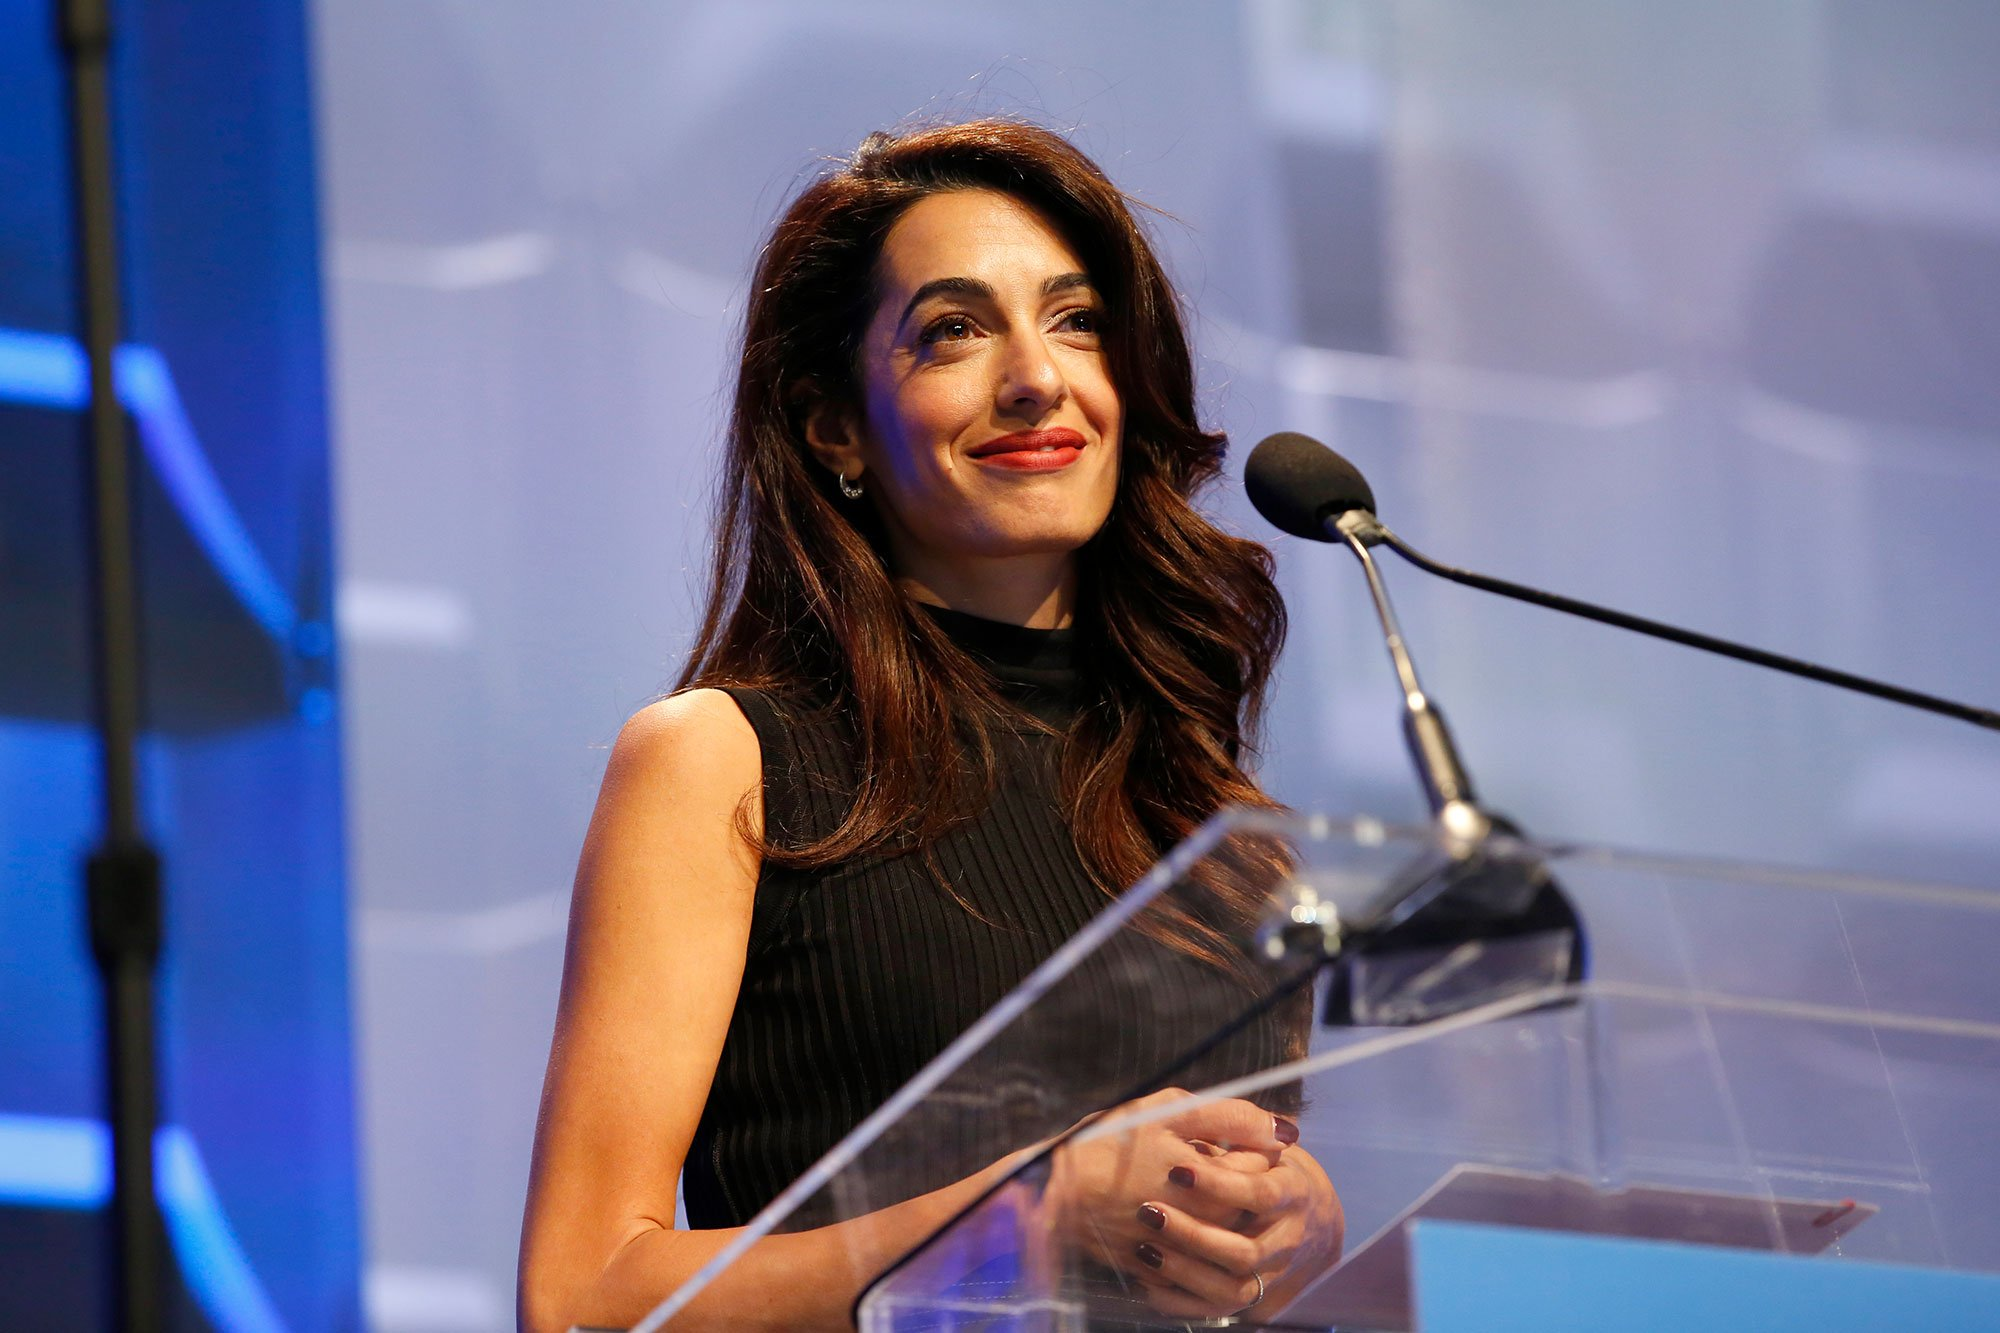 Amal Clooney Opens Up About 'Unwanted Advances' in the Workplace to Father-in-Law Nick Clooney